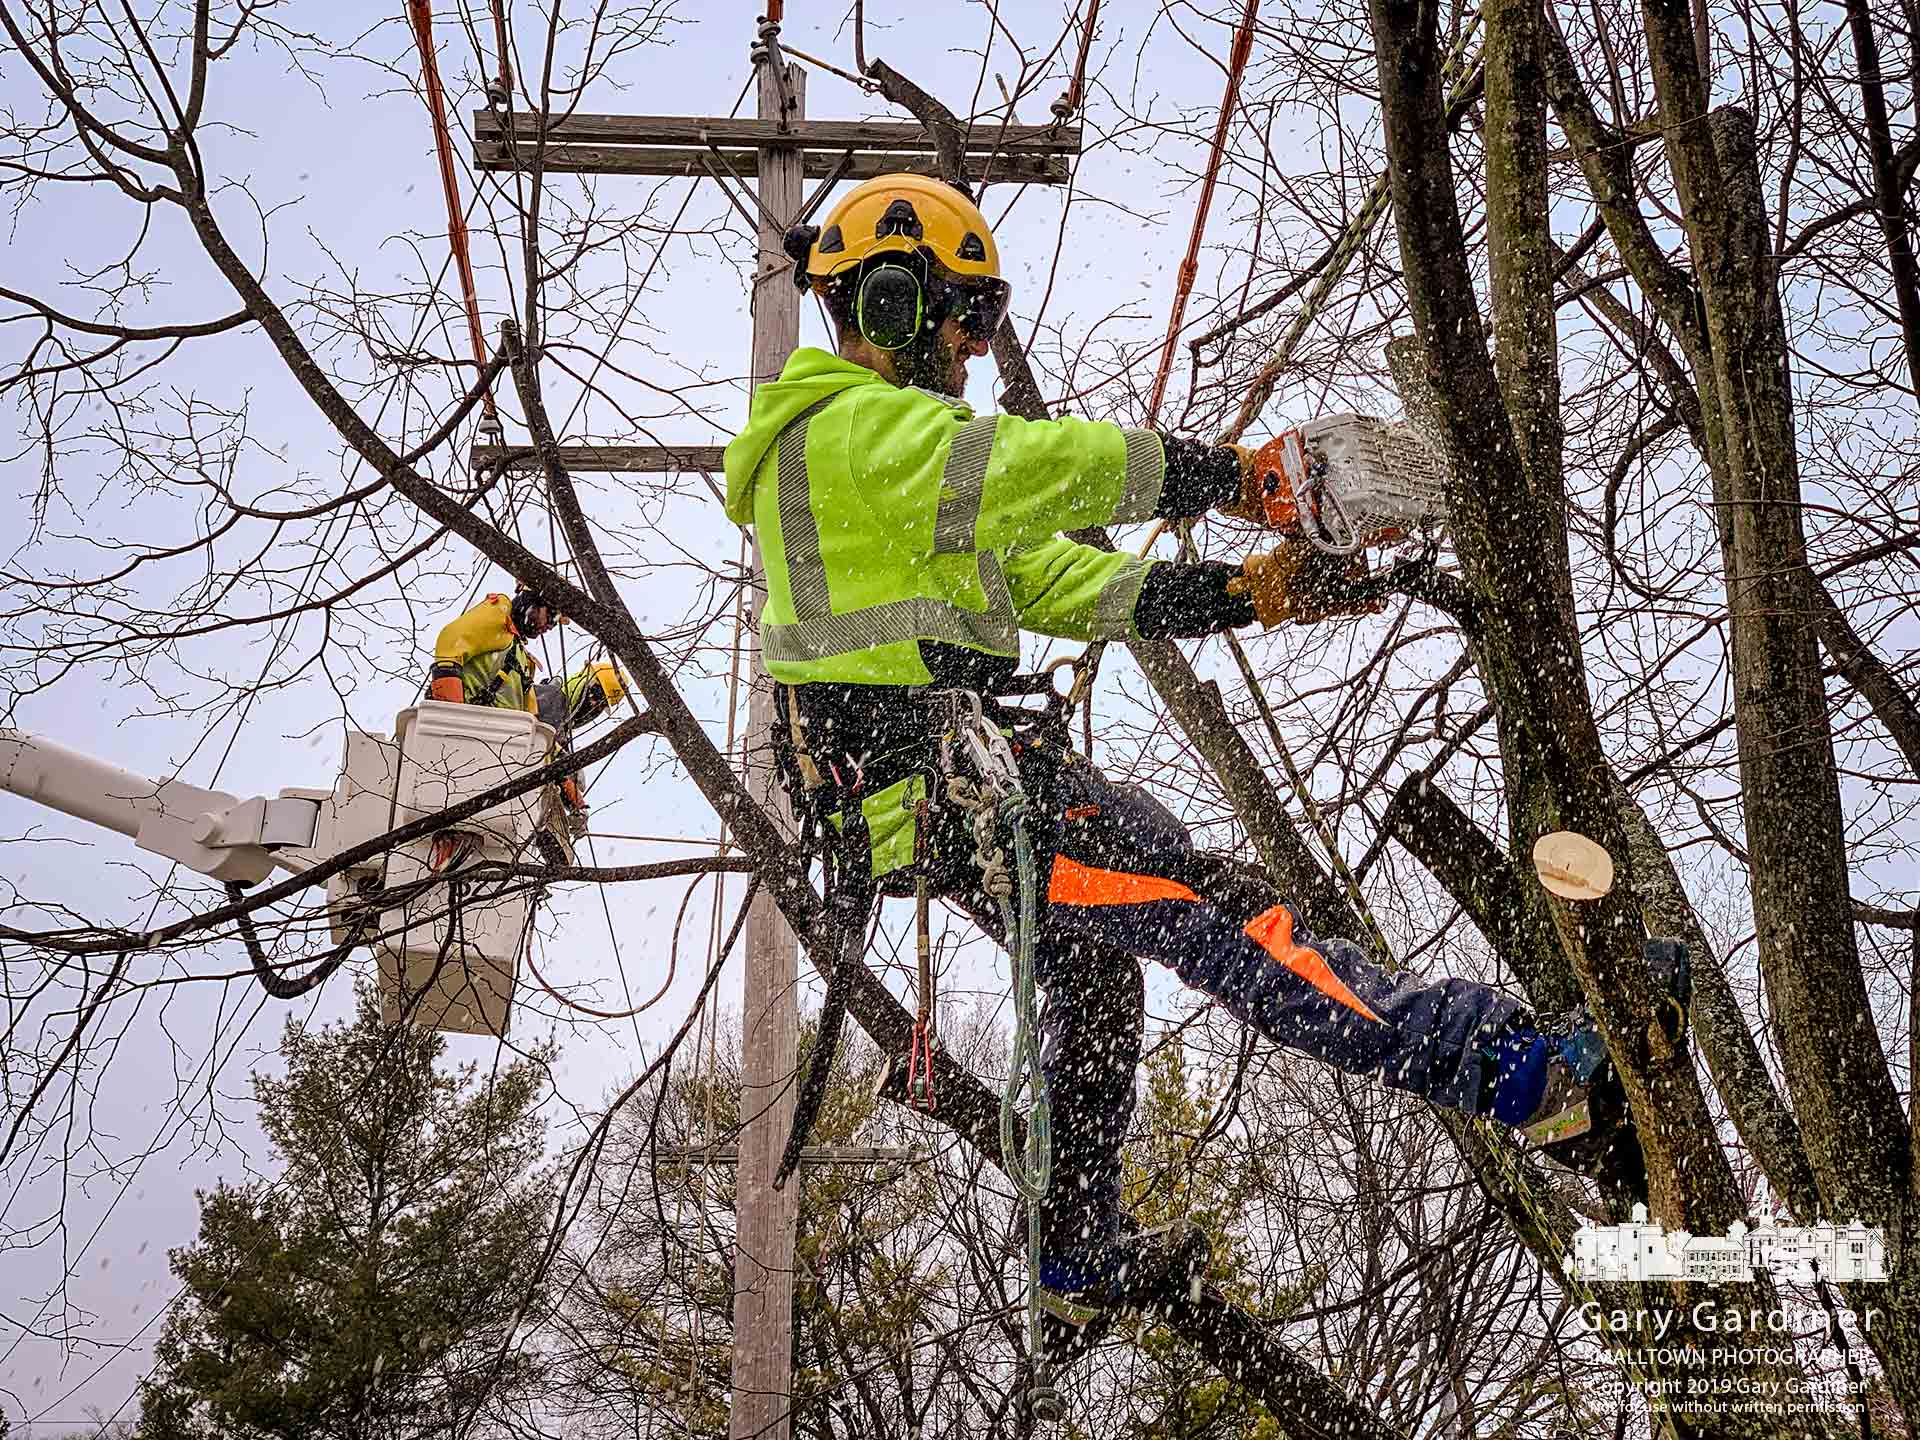 A Westerville city arborist cuts way limbs obstructing the installation of a new utility pole on East Walnut near Spring Road as a second crew temporarily relocates the power lines before completing the job. My Final Photo for March 8, 2019.